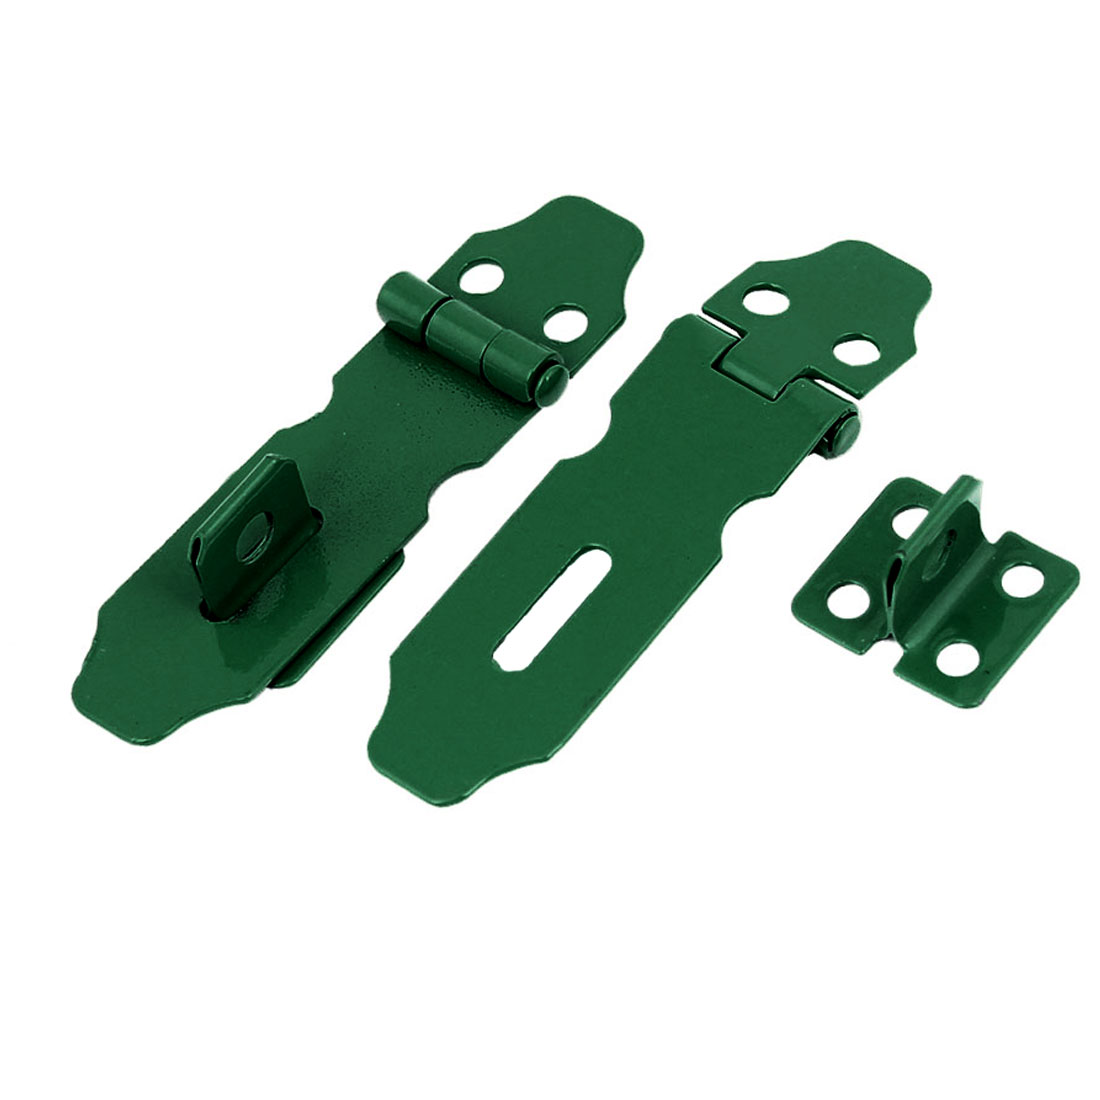 2 Pcs Home Cupboard Doors Green Metal Latch Hasp Staple Set